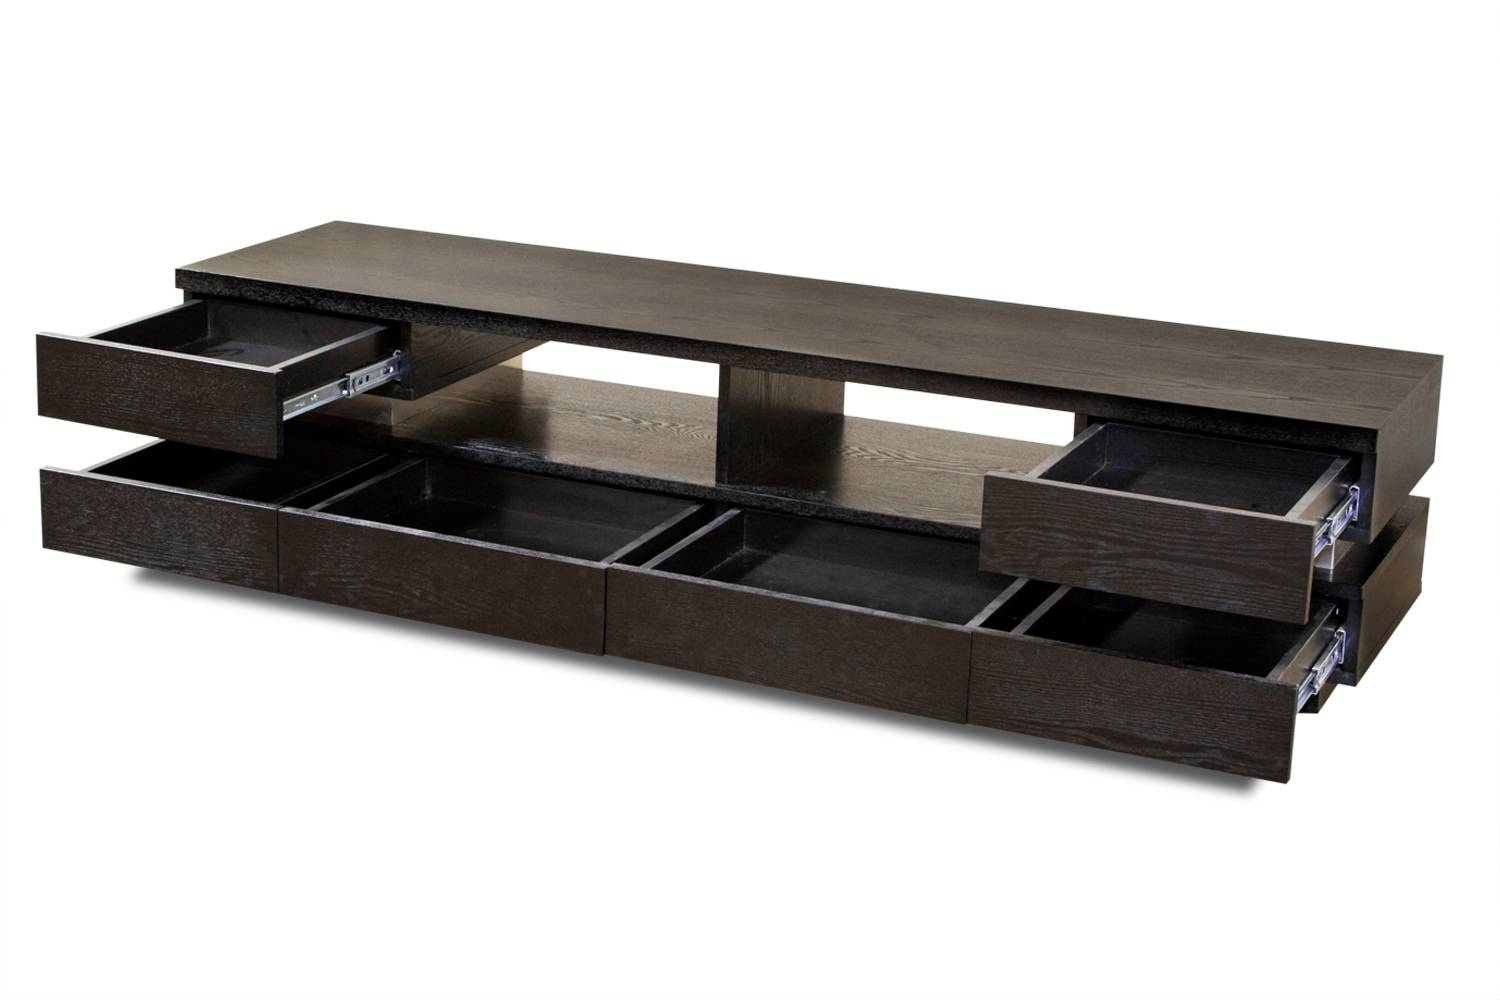 Custom Low Profile Tv Console Design With Drawer And Storage For With Regard To Long Low Tv Cabinets (View 14 of 15)